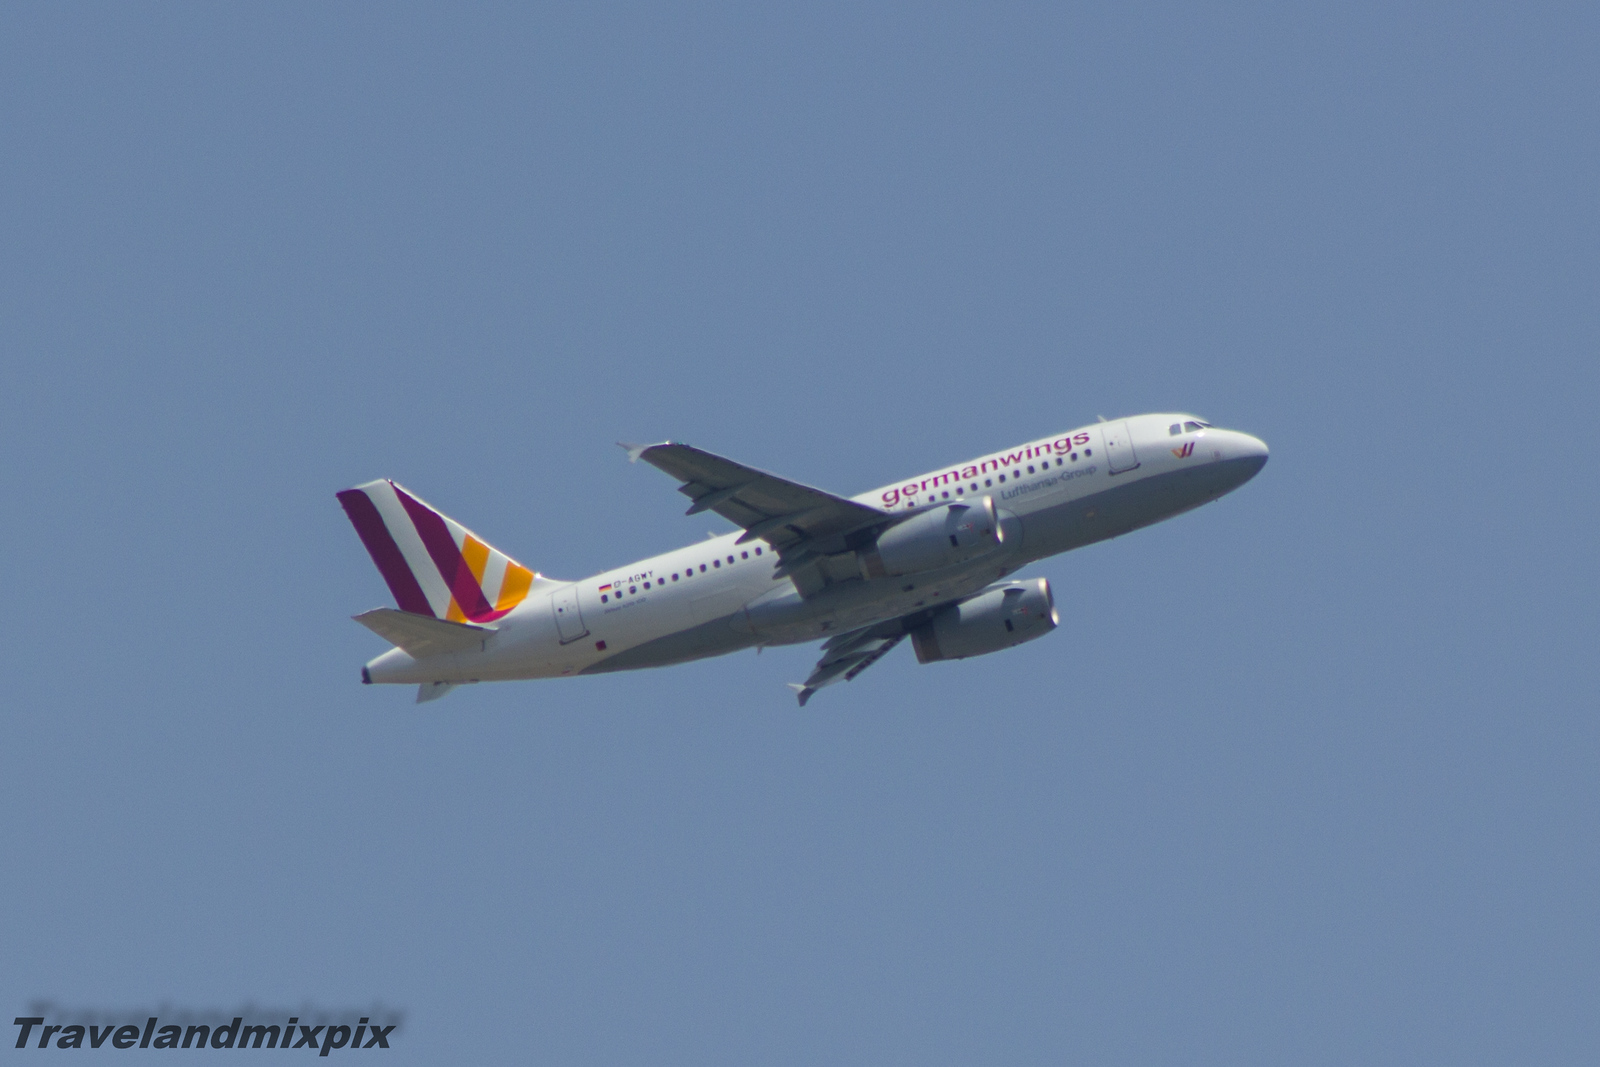 D-AGWY Germanwings Airbus A319-132 Malaga Airport 01/07/2015